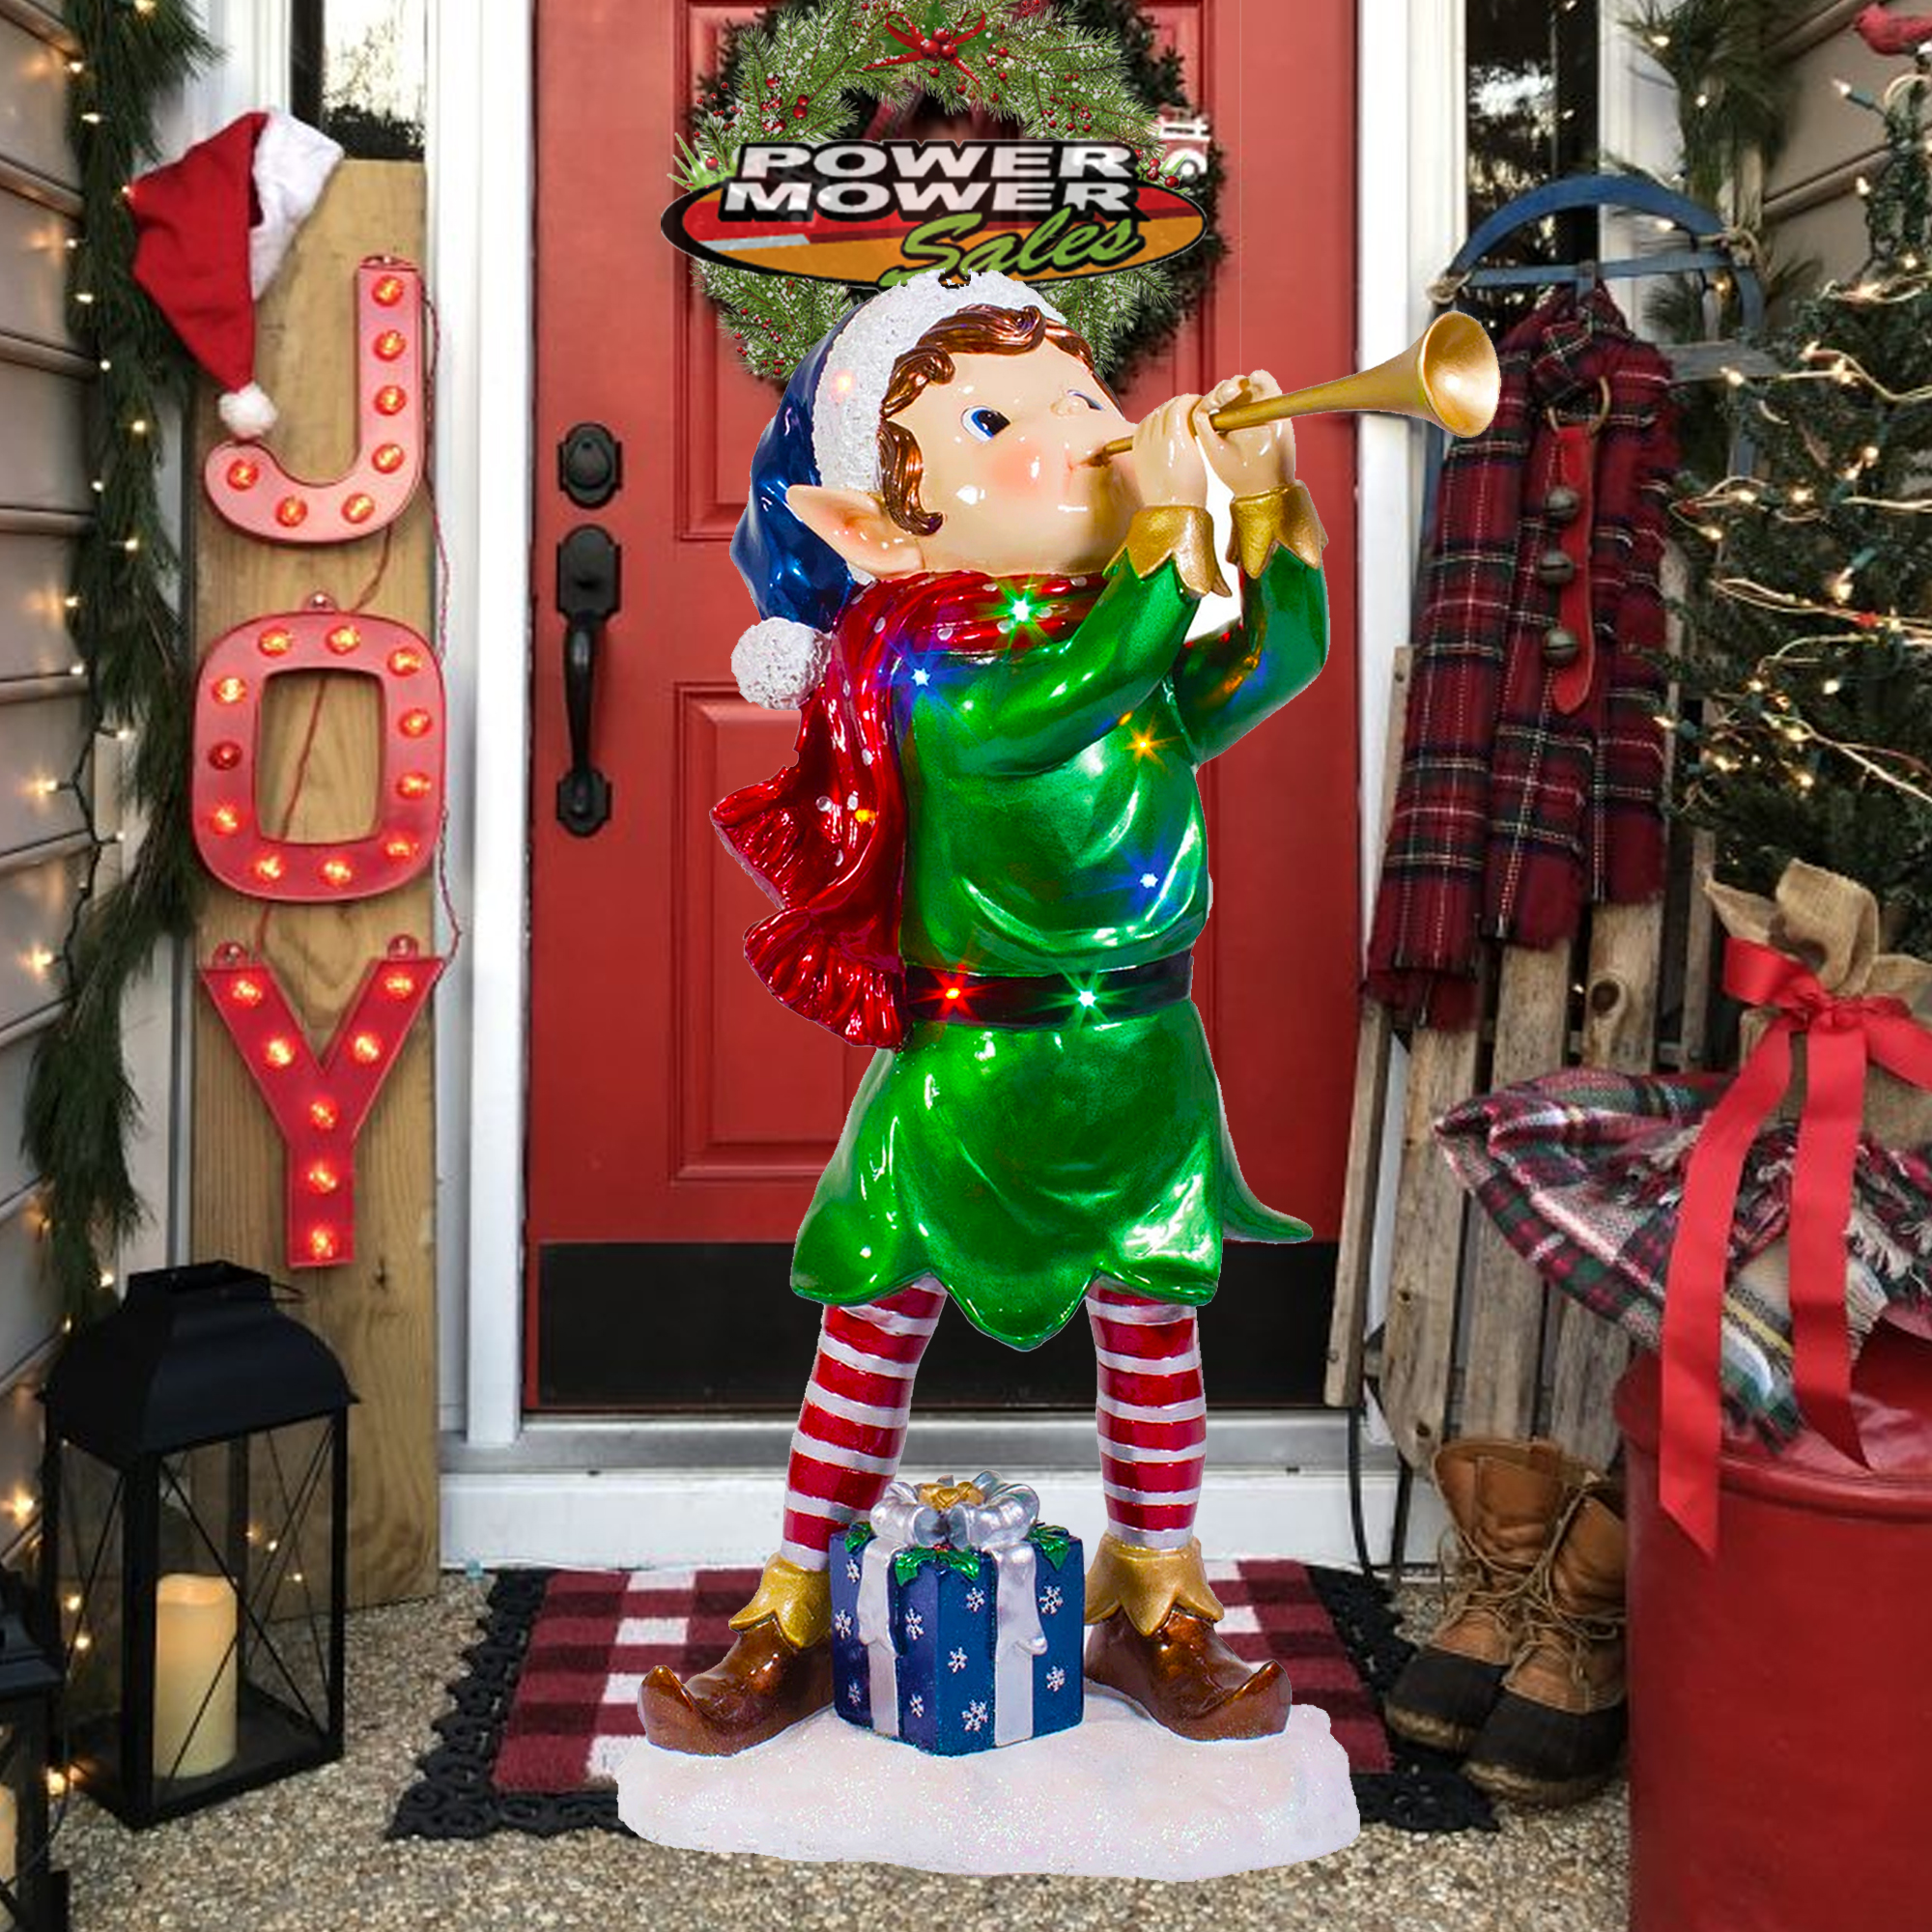 Details about Outdoor Elf , Christmas Holiday Decoration \u0026 Ornaments , LED  3\u0027 Pixie Elf w Horn